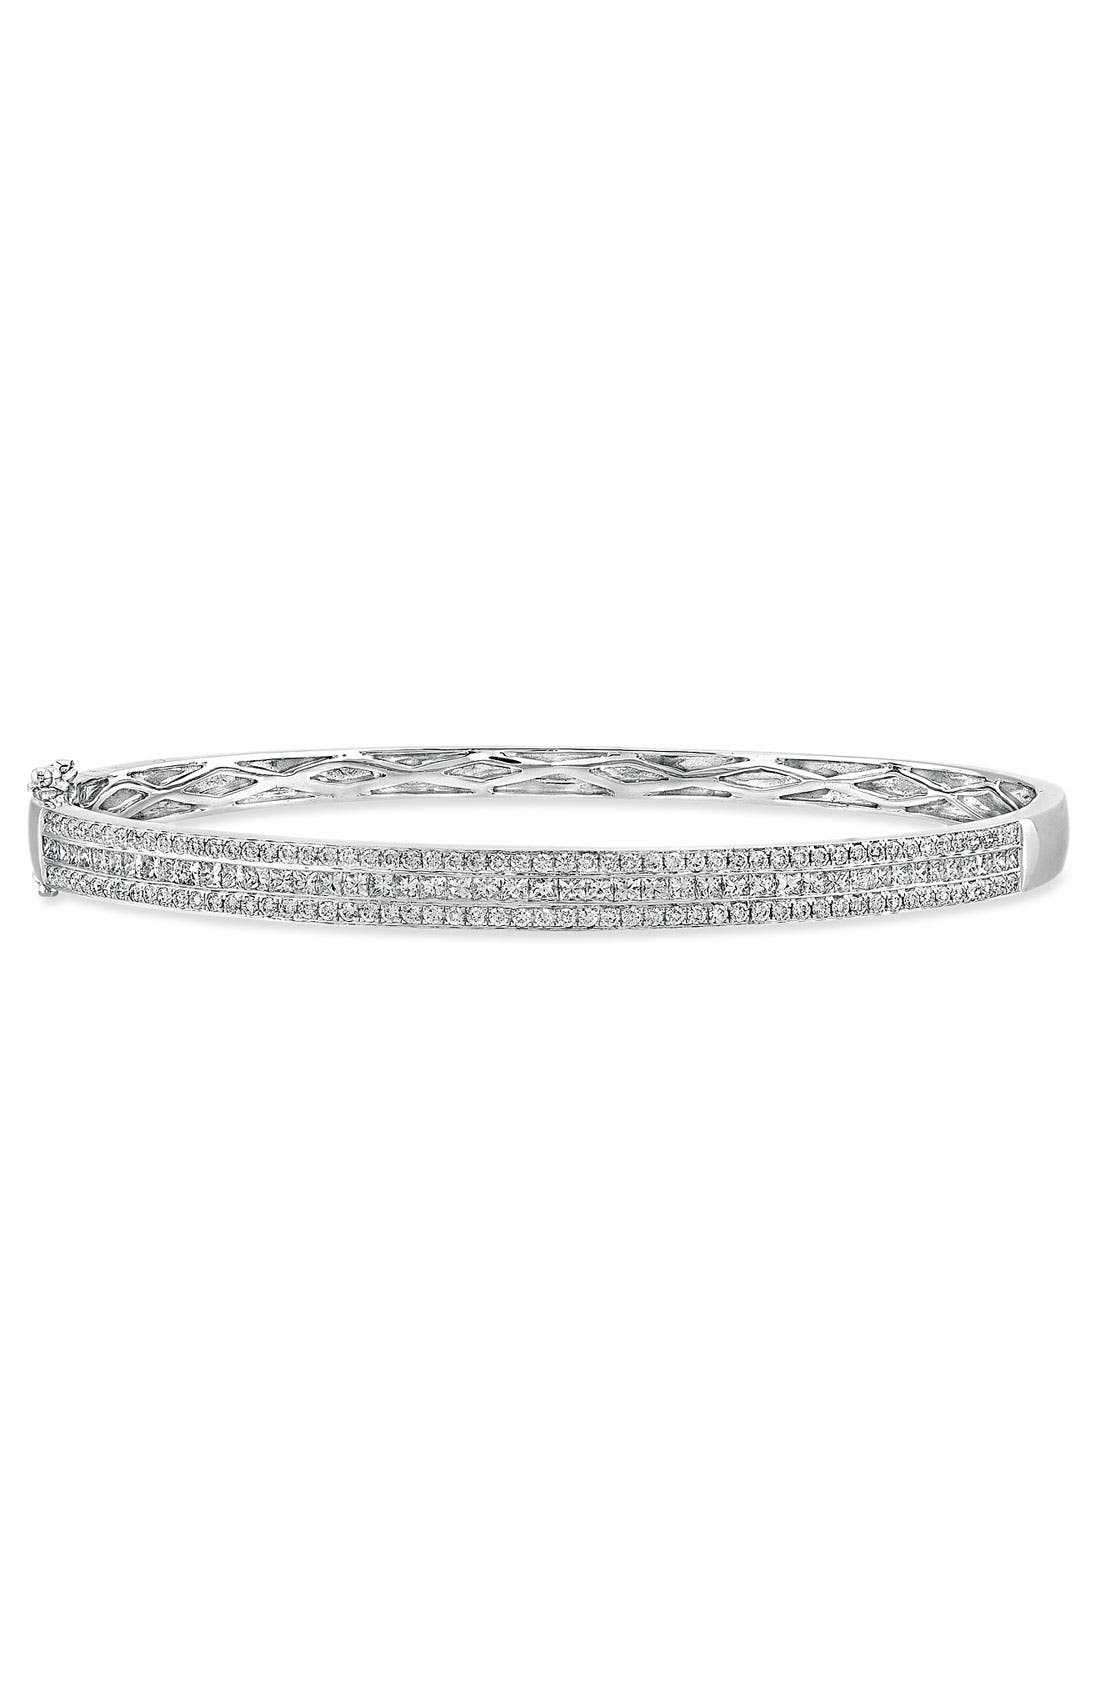 Alternate Image 1 Selected - Bony Levy Diamond Bangle (Nordstrom Exclusive)